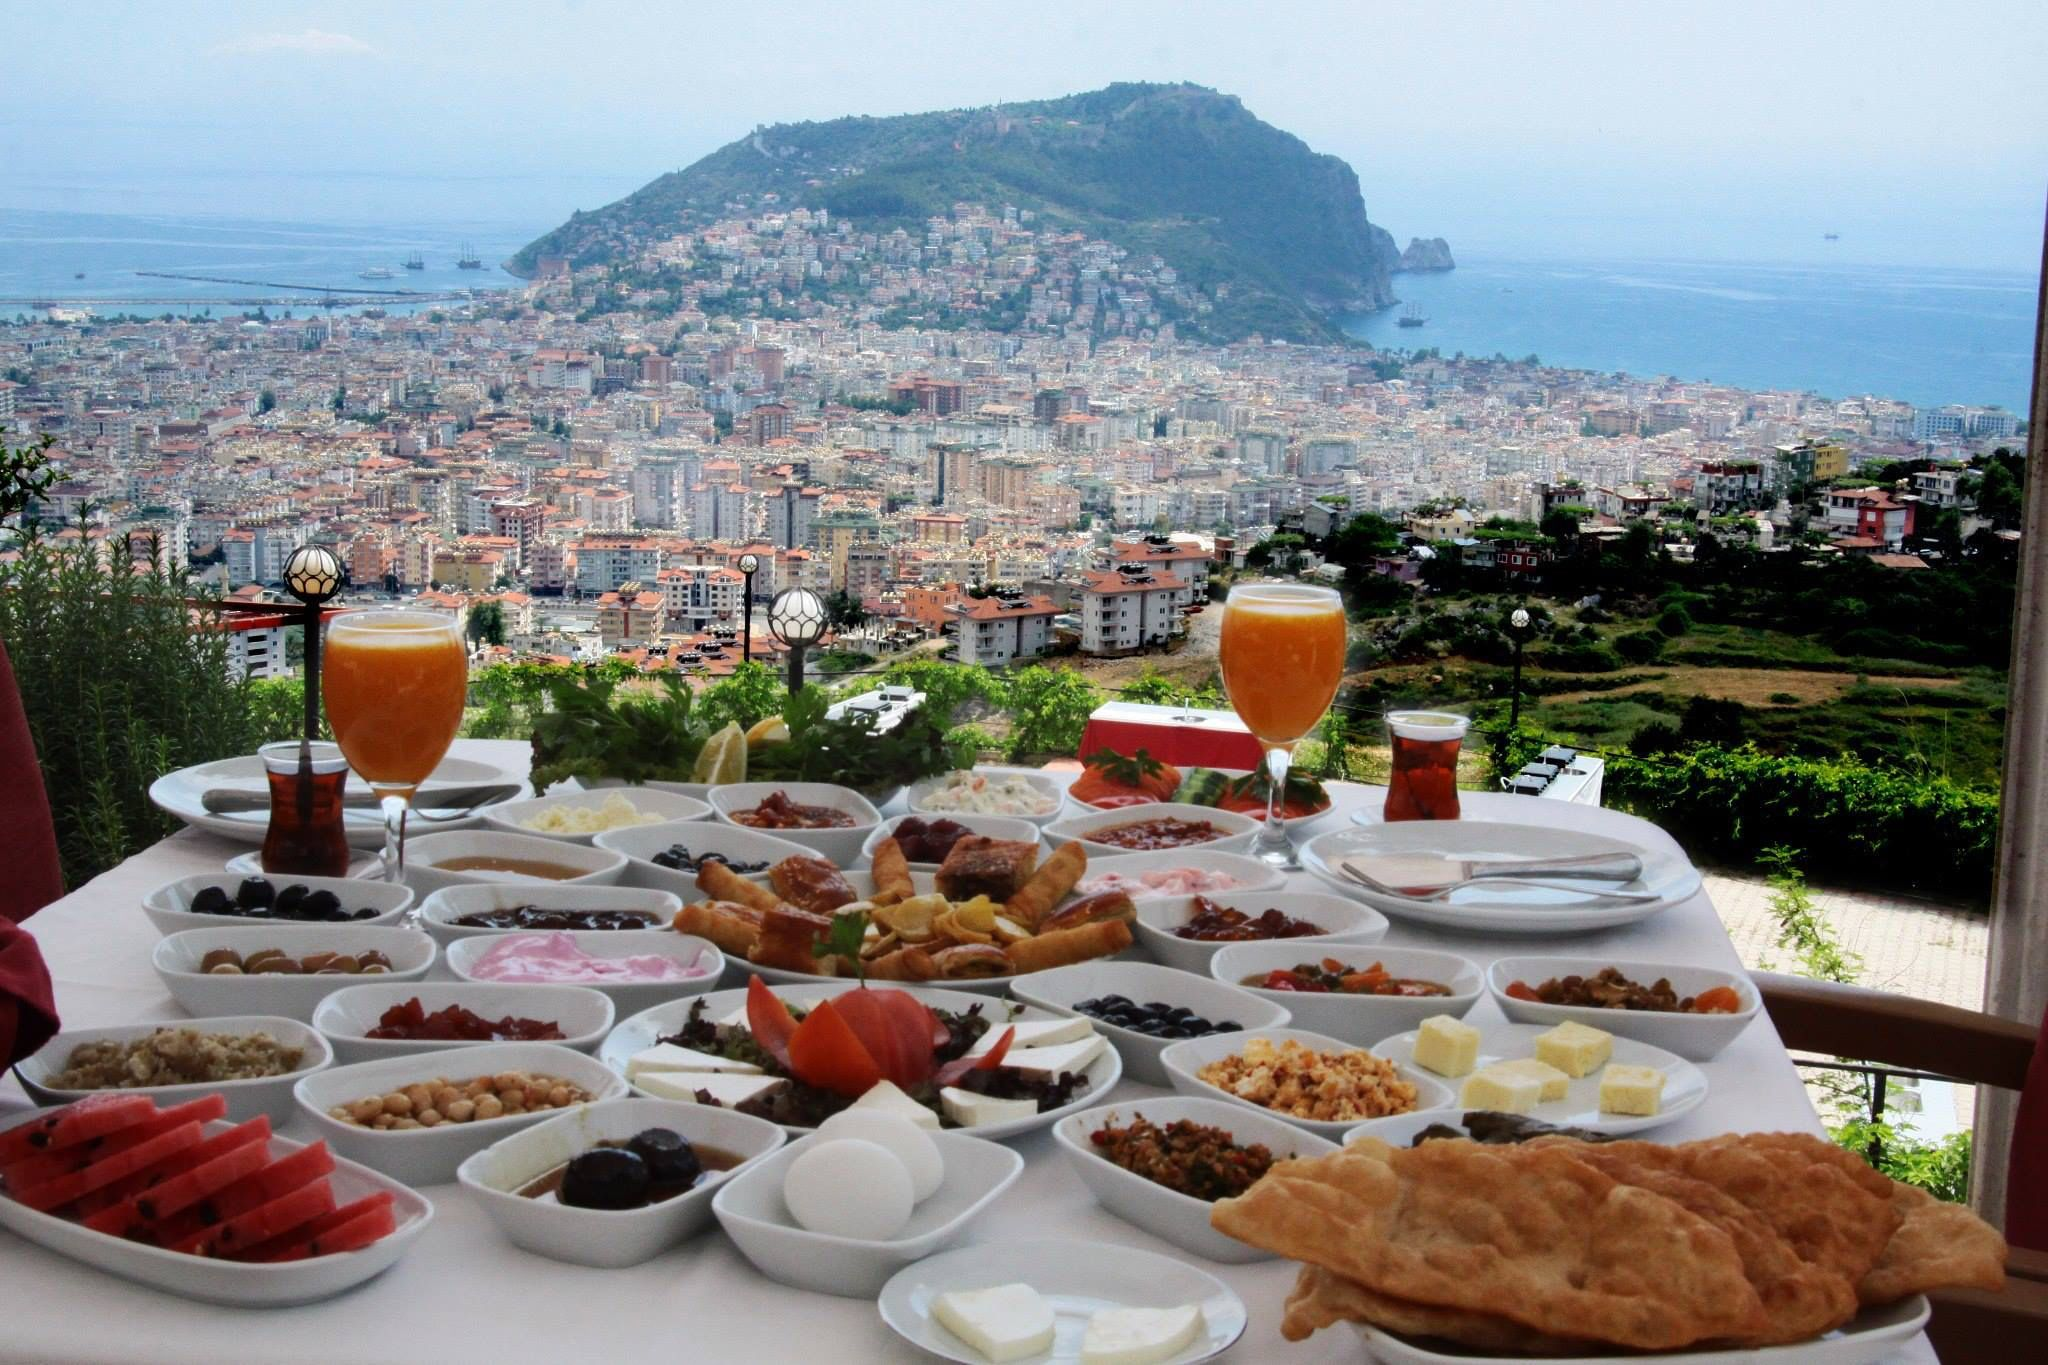 Alanya delicious foods and restaurants